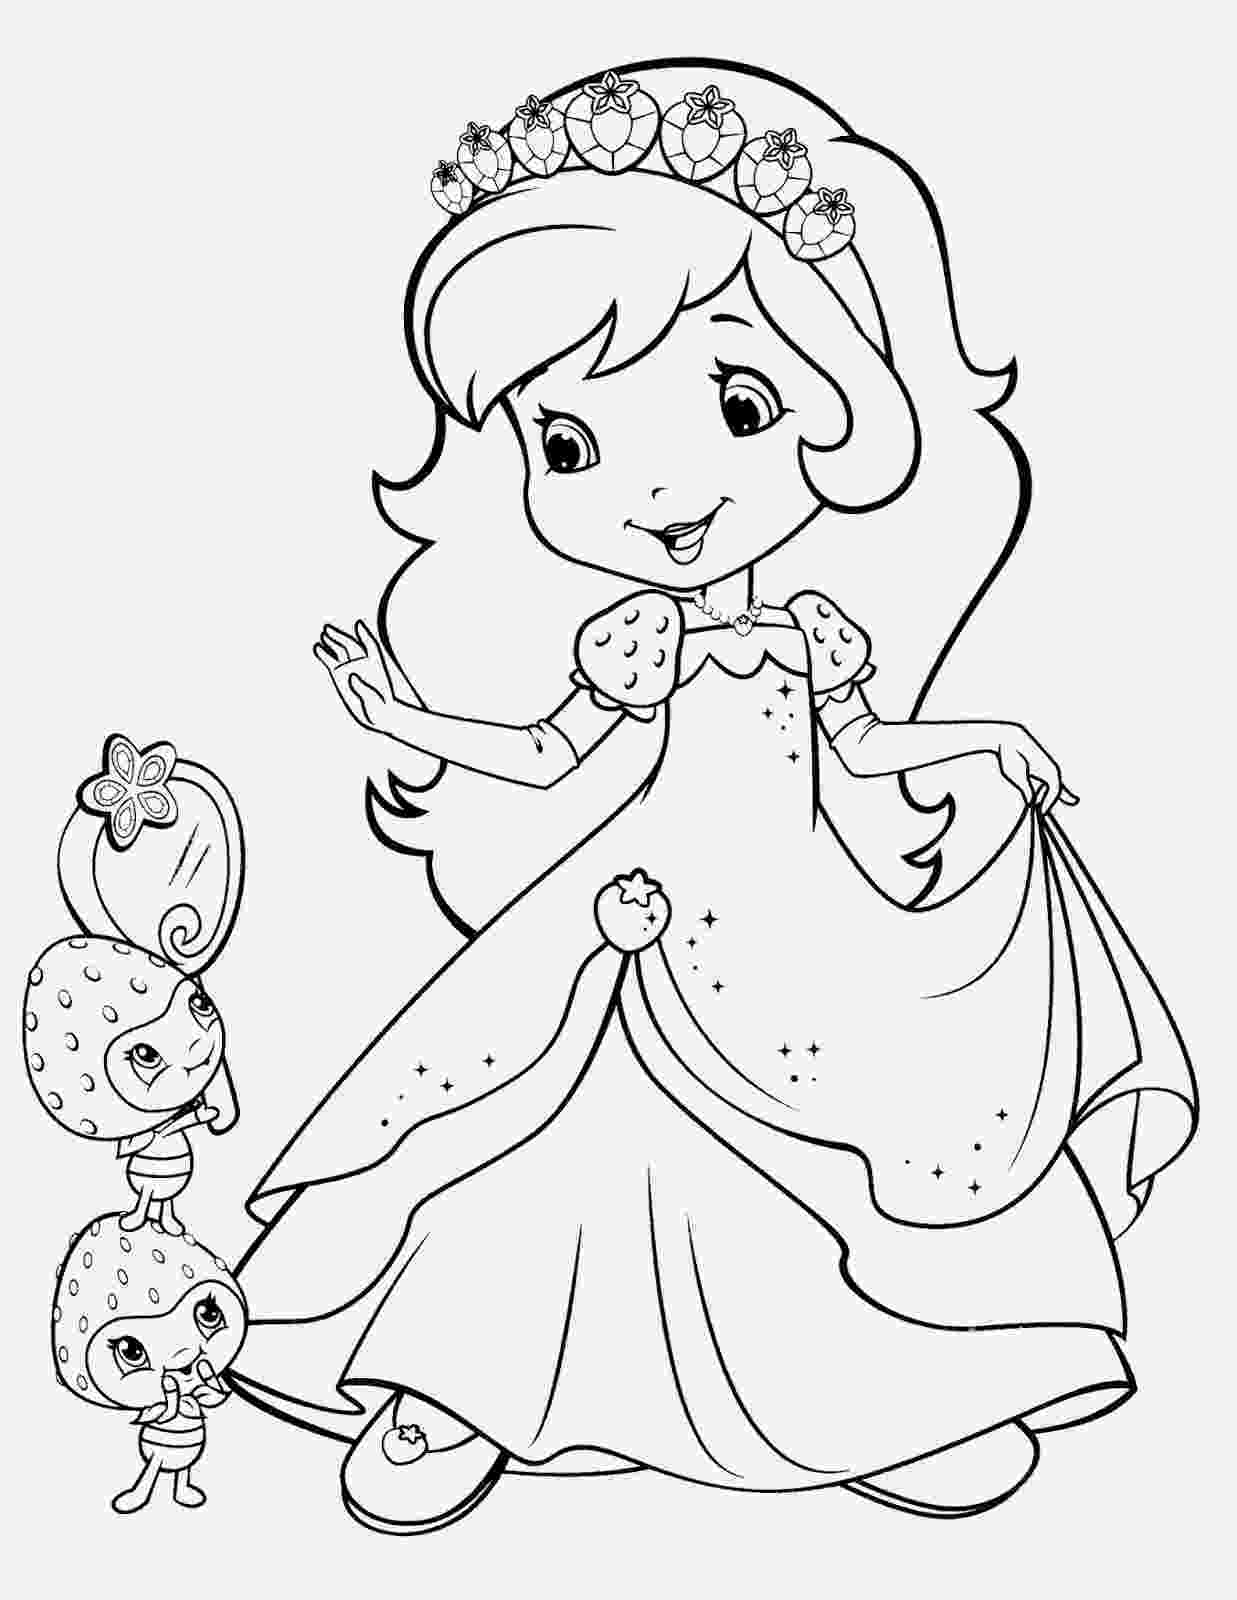 strawberry shortcake coloring page strawberry shortcake coloring pages coloring pages for kids coloring strawberry page shortcake